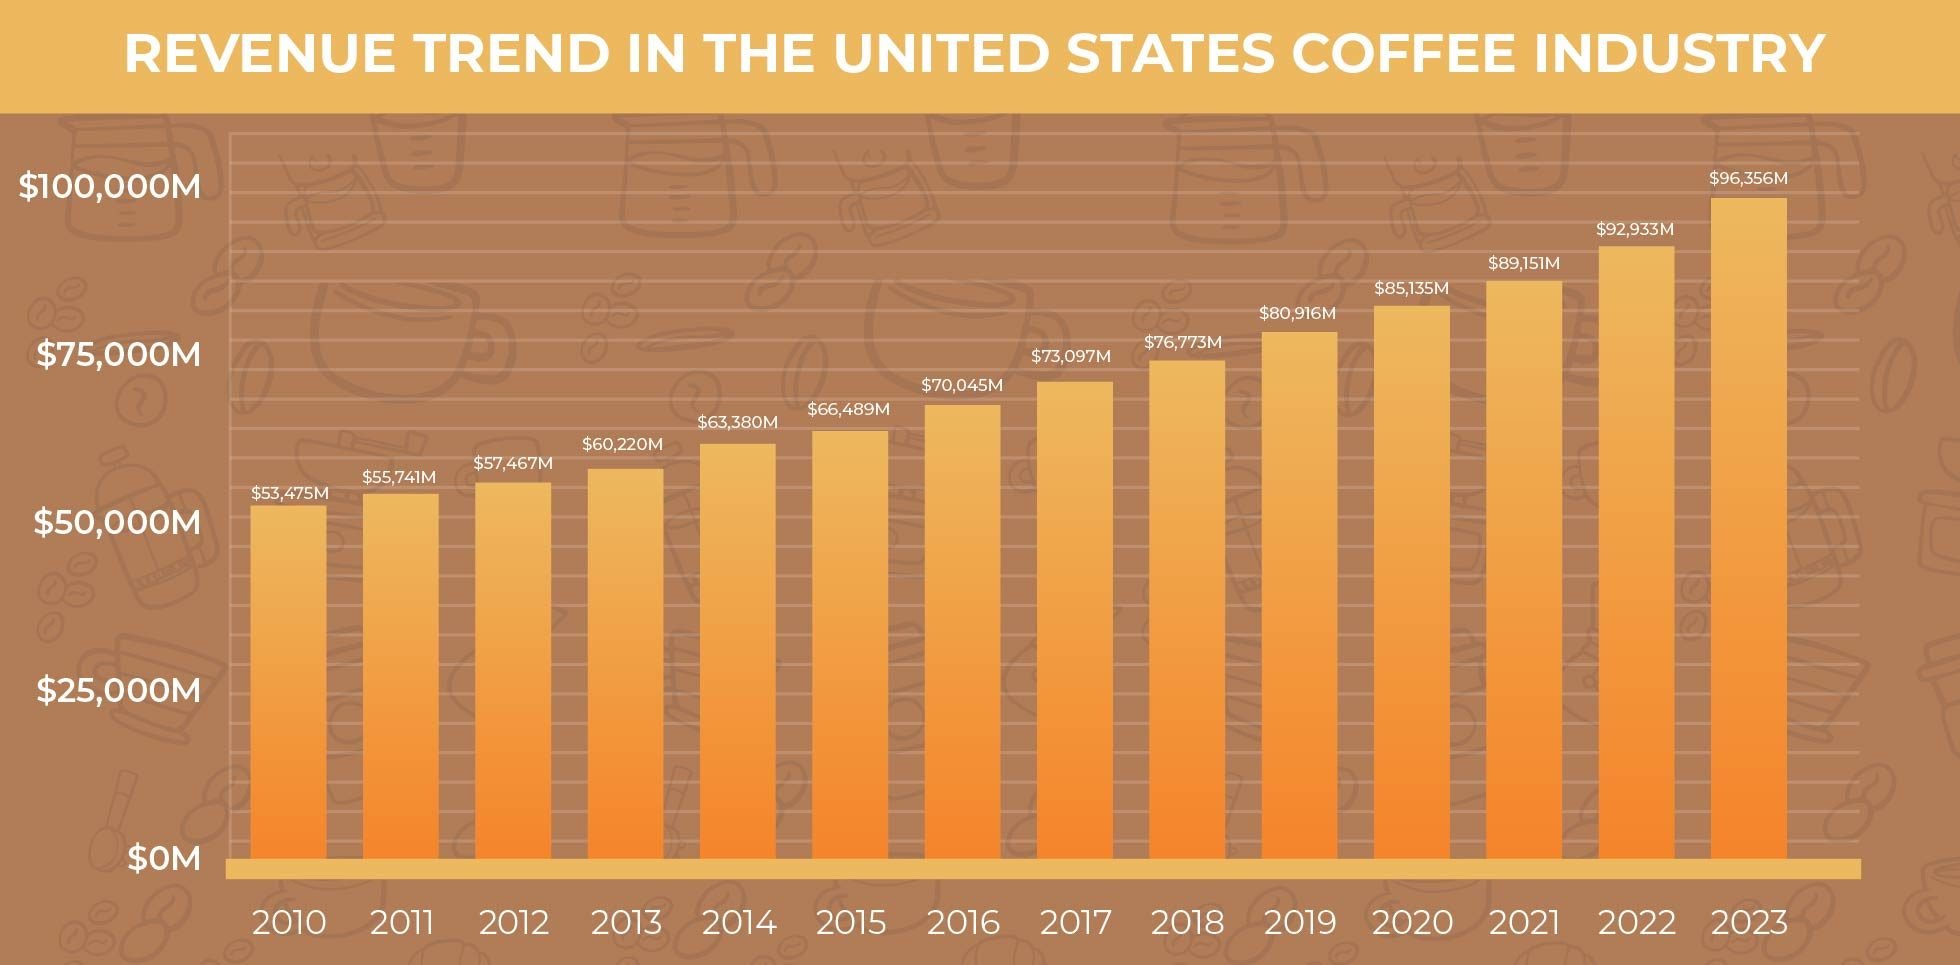 Revenue Trend in the United States Coffee Industry